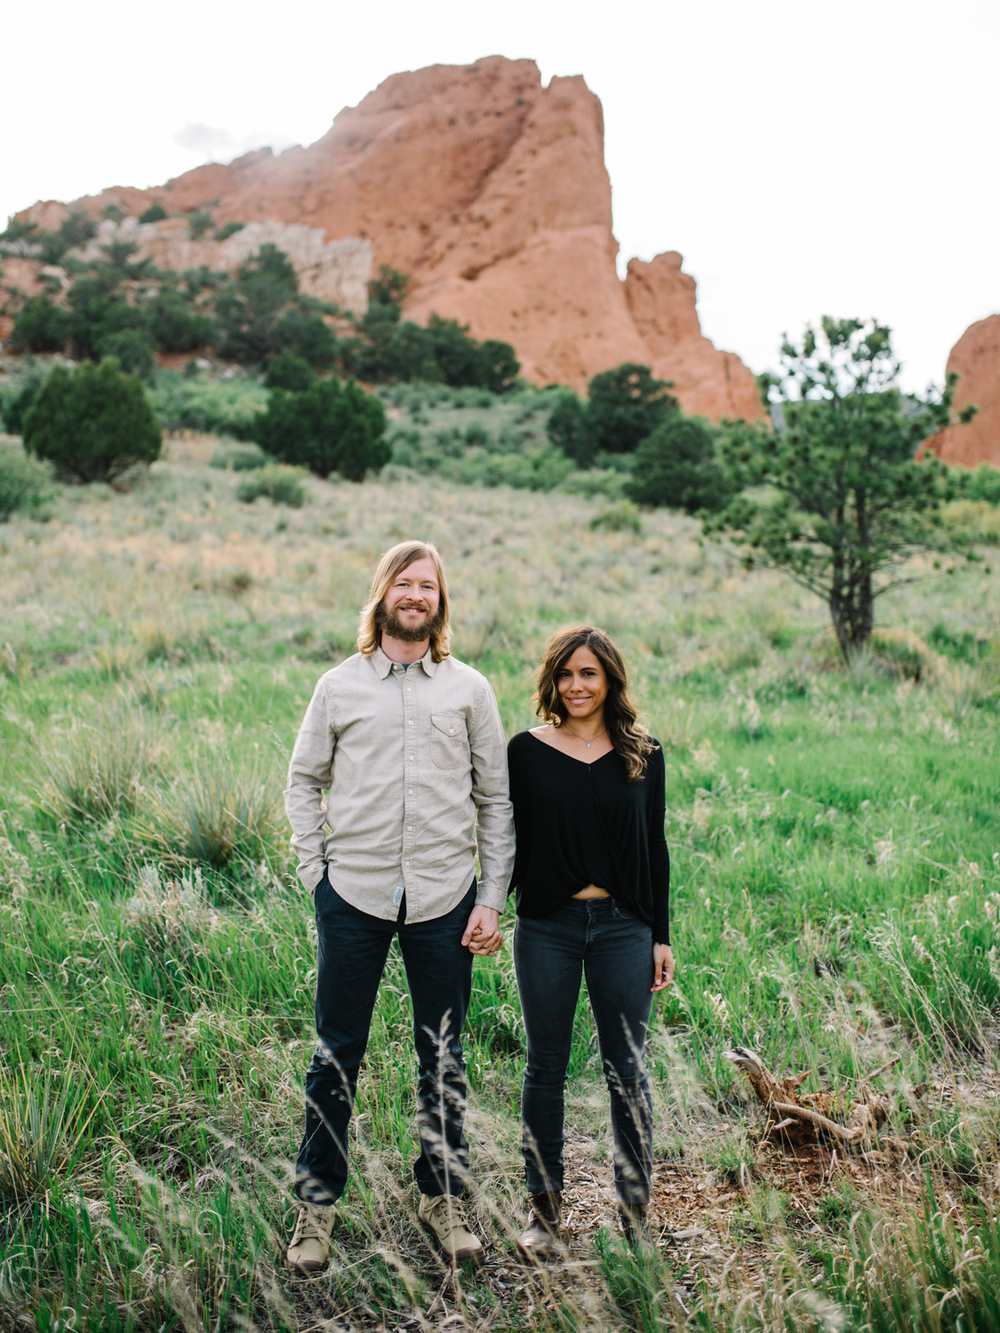 Garden of the Gods-Colorado Springs, Colorado-Engagement-Neal Dieker-Colorado Engagement-Colorado Phototographer-Mountain Engagement-100.jpg